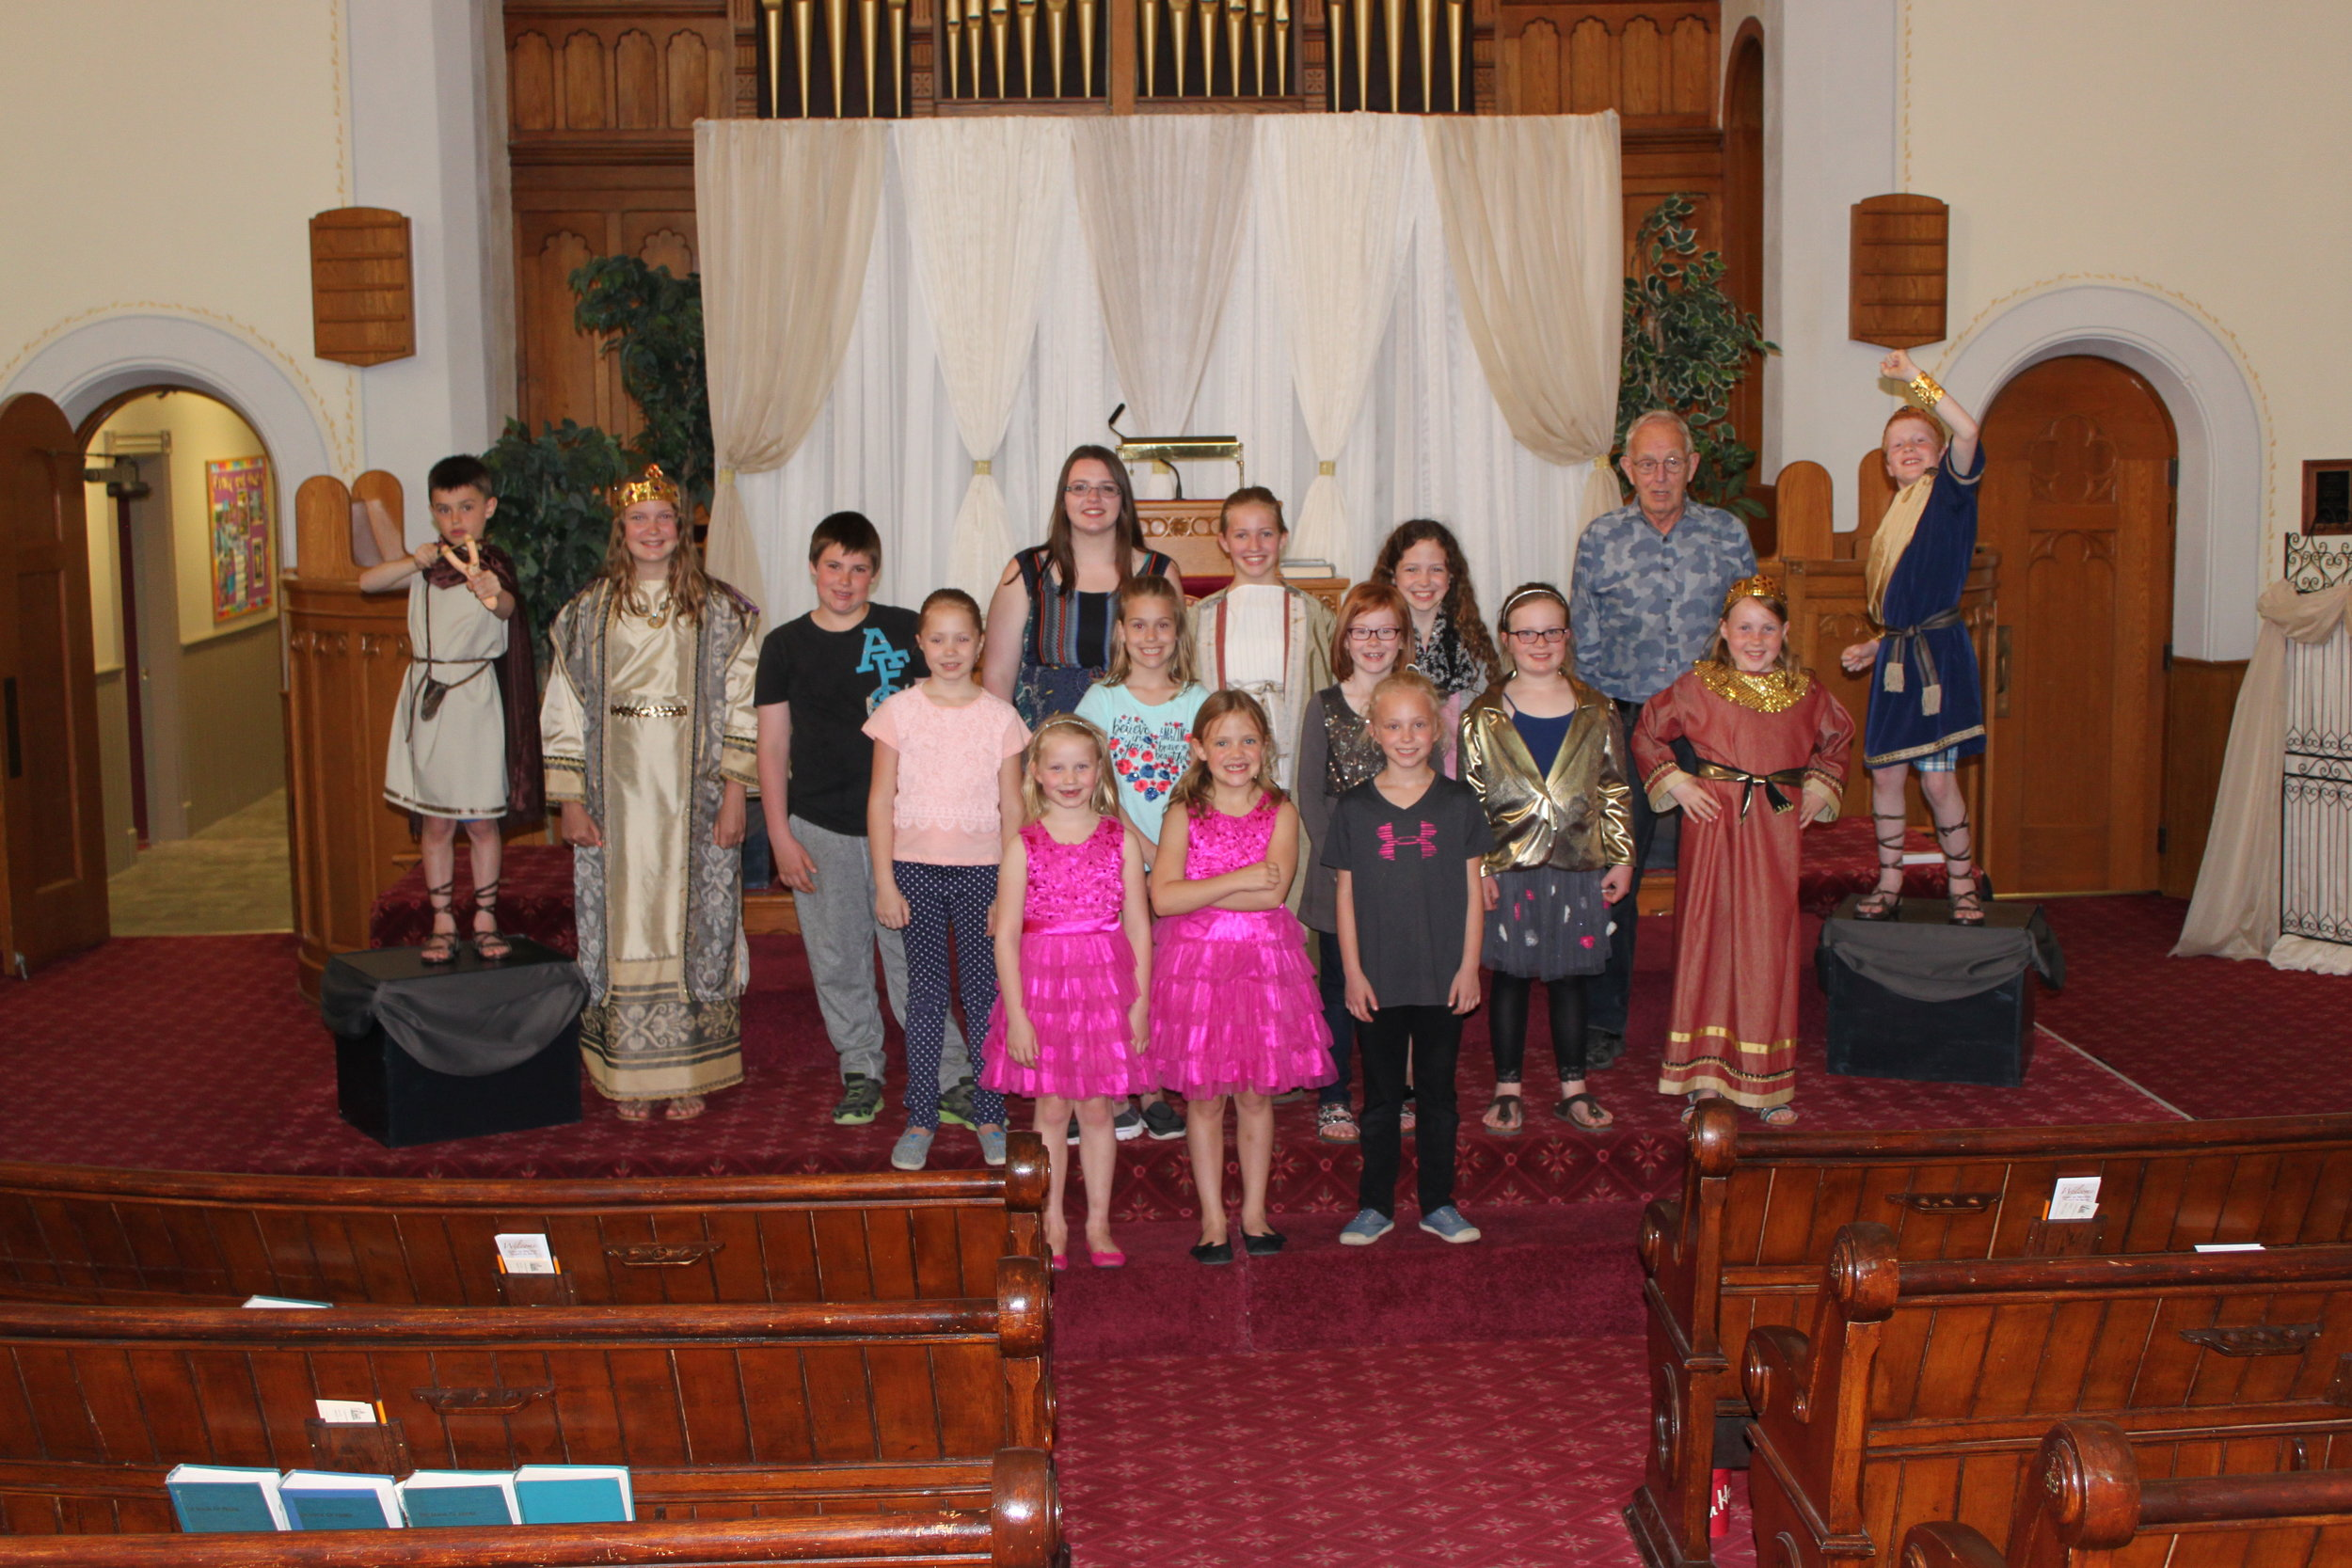 The Kingdom Connection (May 15, 2016) Back L-R:  Karch Fletcher, Brynn Ament, Devin Johston, Lexi Johnston, Emily Royce, Camryn McCutcheon, George Sjaarda, Ben Robinson  Middle row:  Calla Weber, Keira Schaefer, Hadleigh Martin, Natalie Robinson, Olivia Hughes  Front row:  Thea Weber, Claire McCutcheon, Mila Campbell